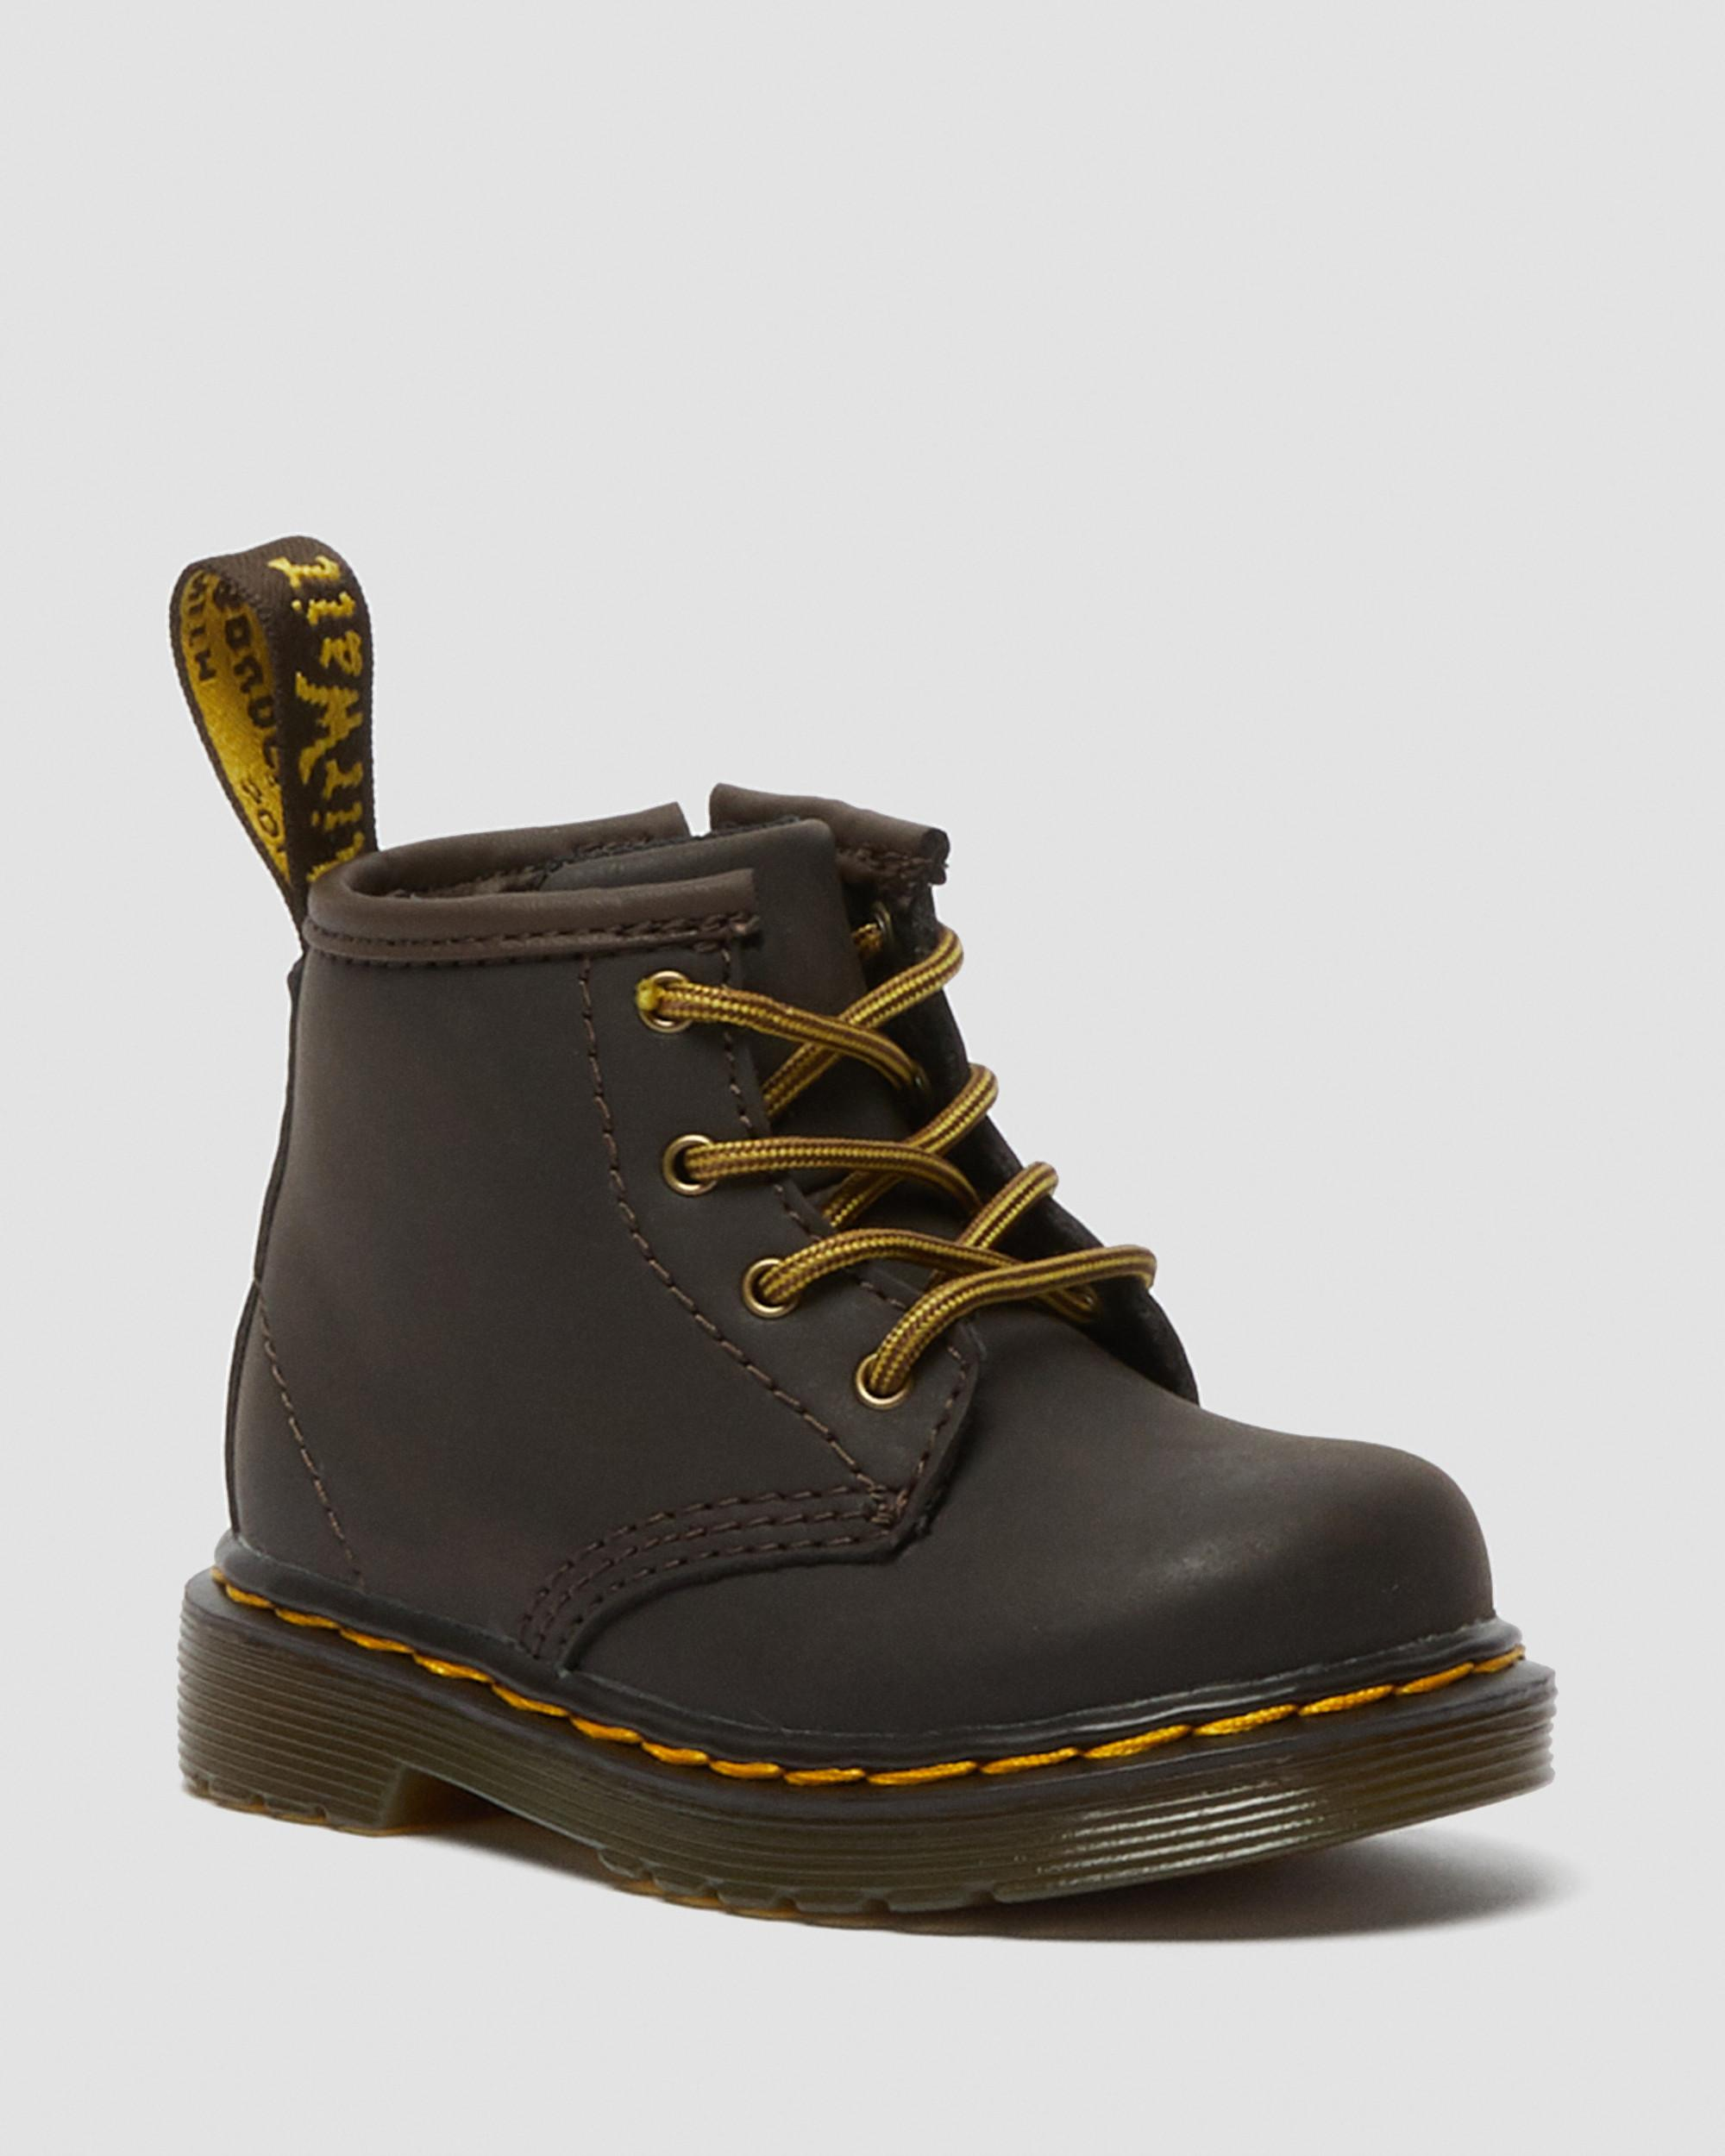 INFANT 1460 WILDHORSE LEATHER LACE UP